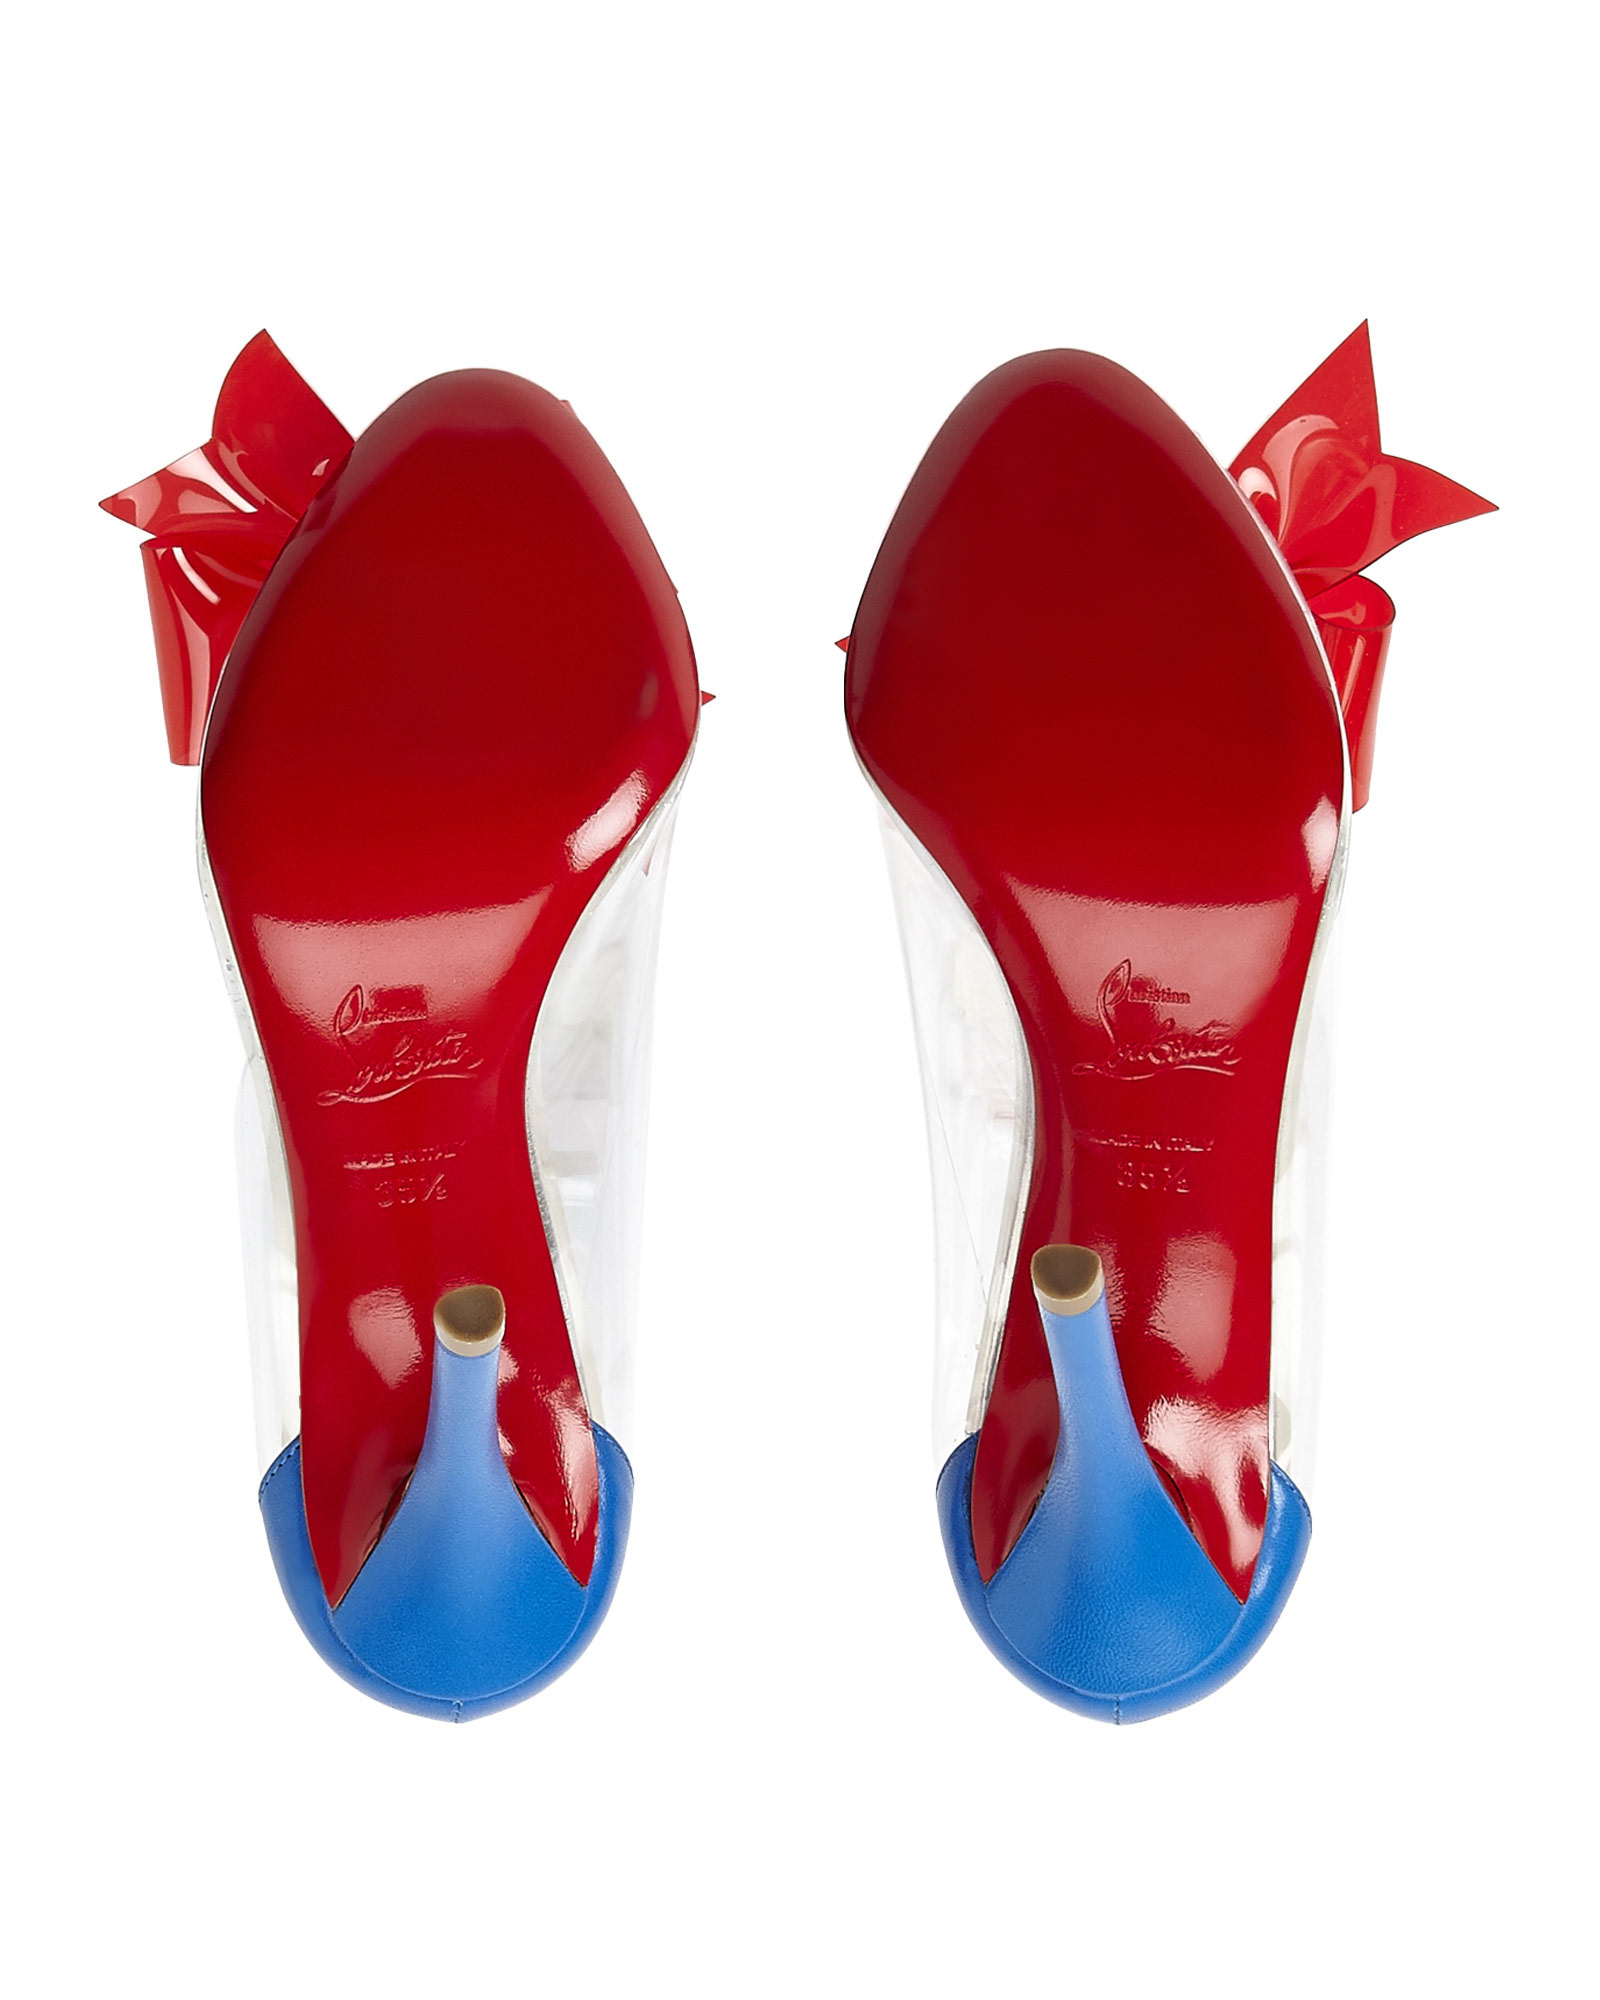 645fd589344 Lyst - Christian Louboutin Clear   Red Pvc Bow Pumps in Blue